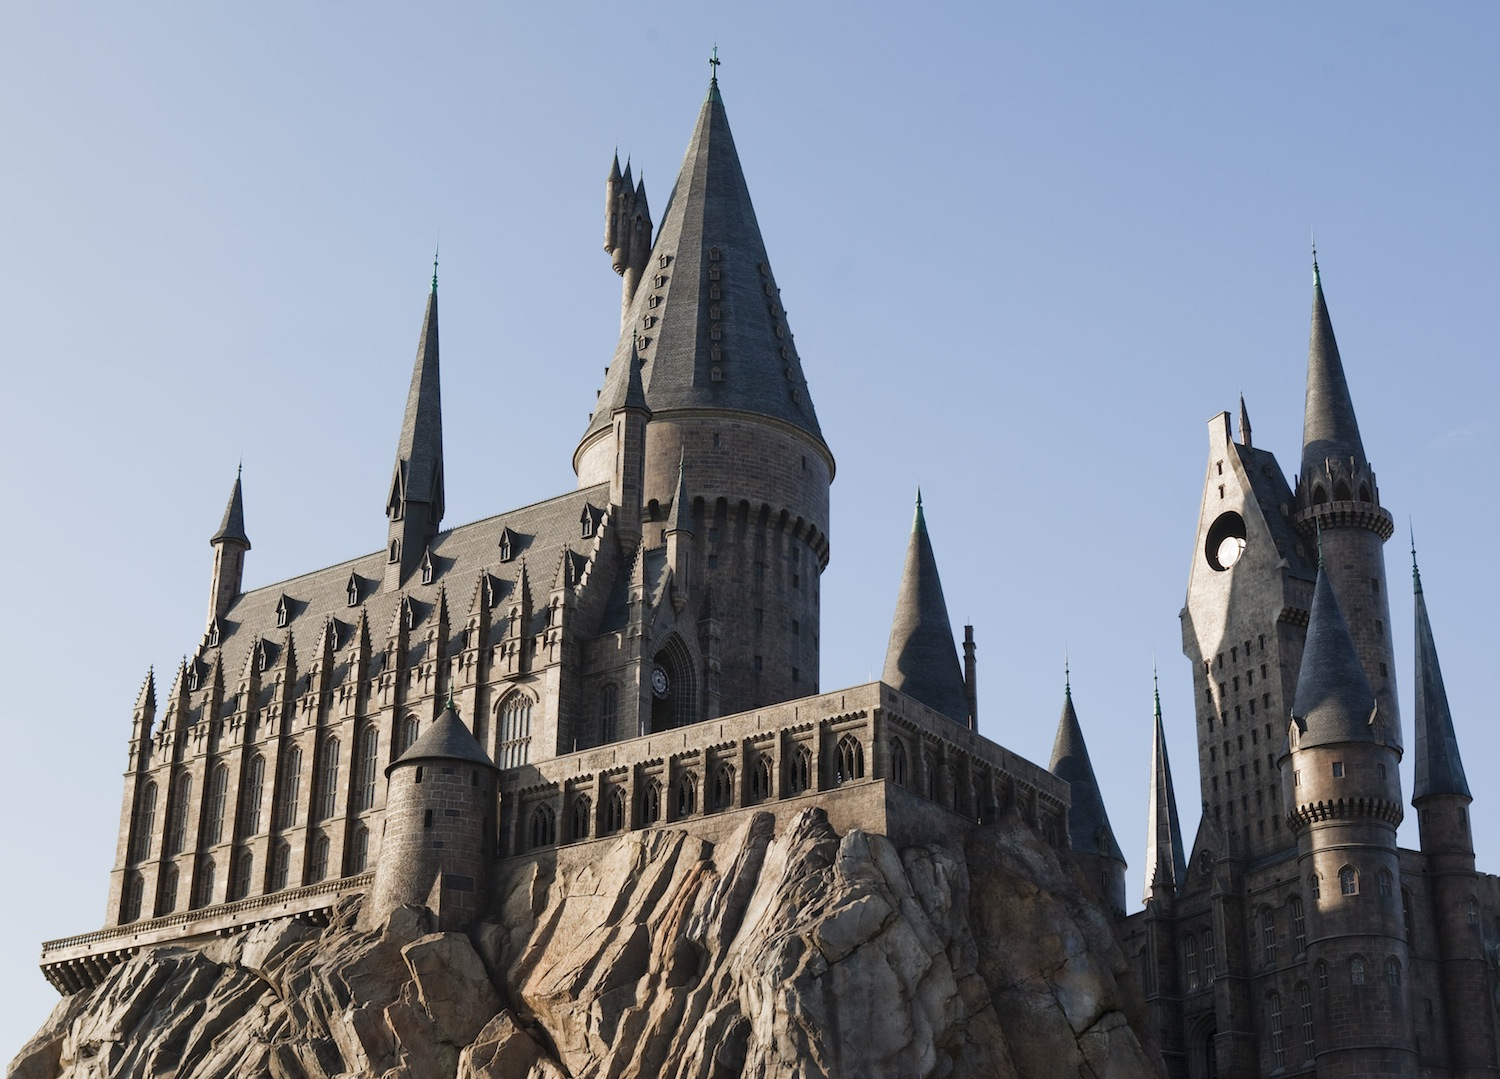 Hogsmeade-Hogwarts-Wizarding-World-of-Harry-Potter-and-the-forbidden-journey-Islands-of-Adventure-Universal-Orlando-controle-qualite